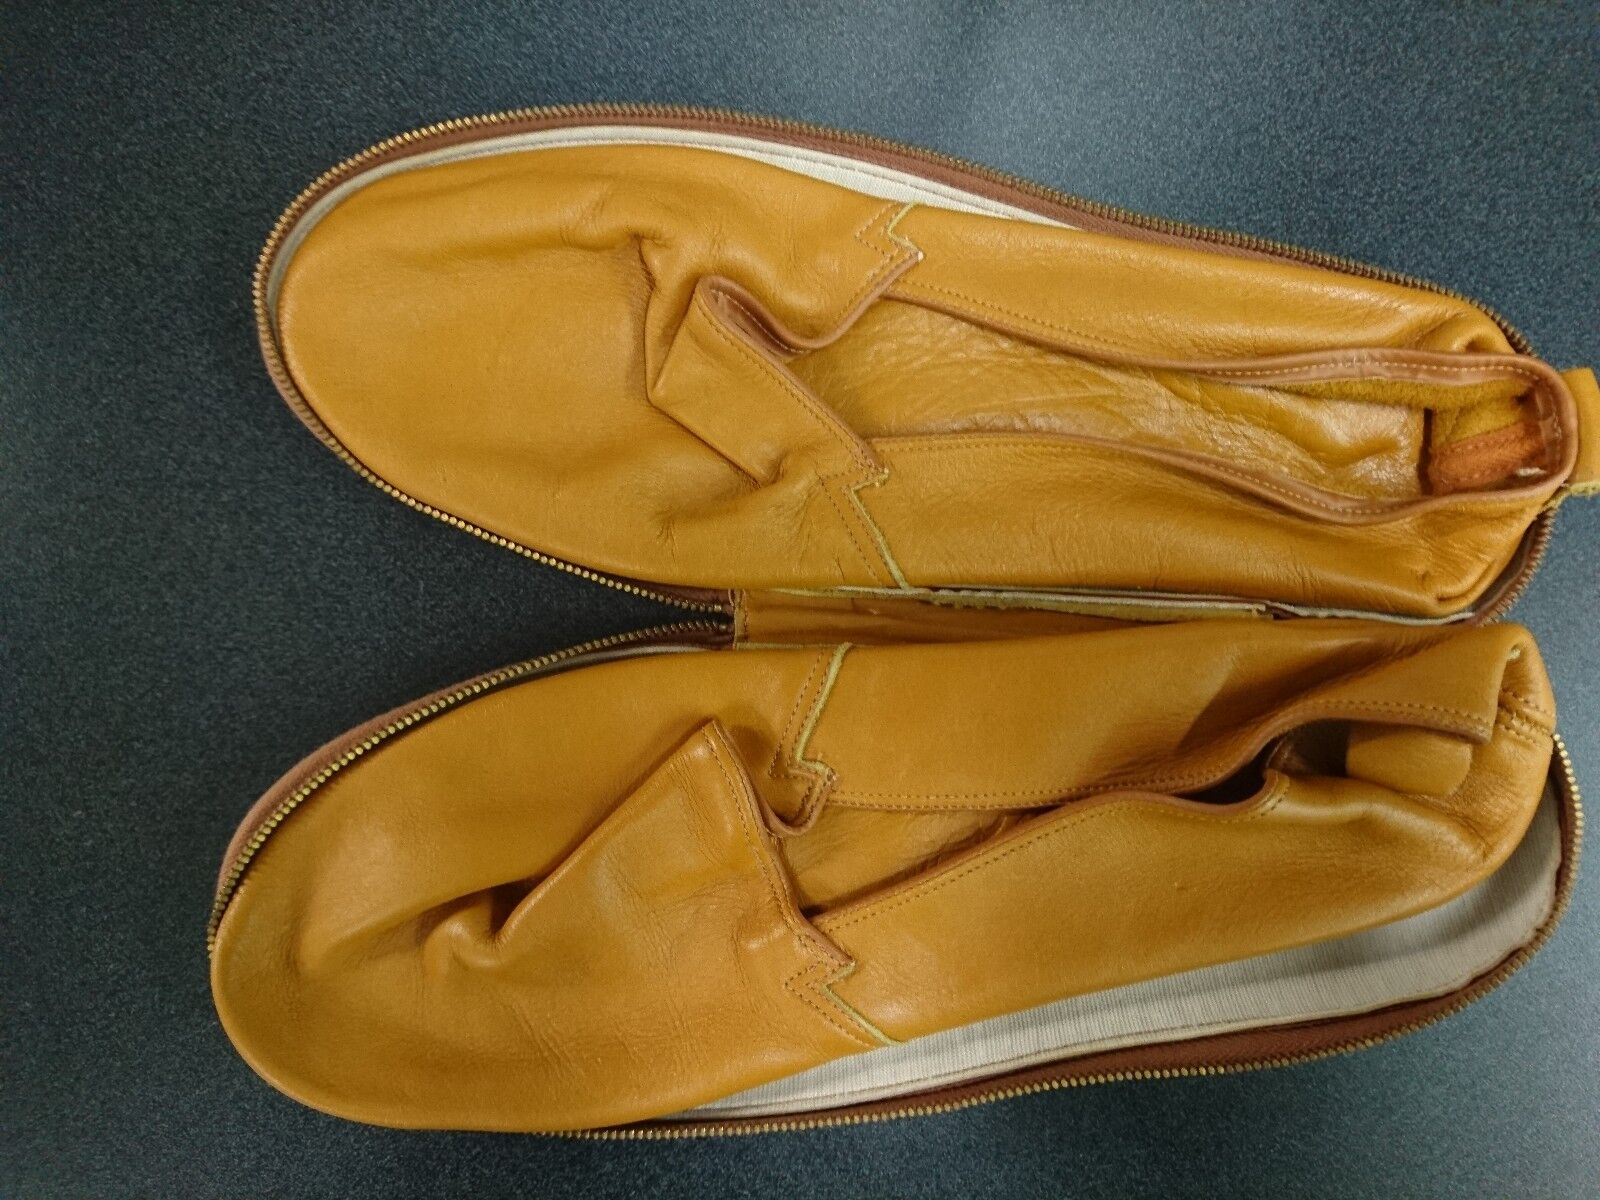 Vintage leather slippers with leather travel case by Packard - NOS